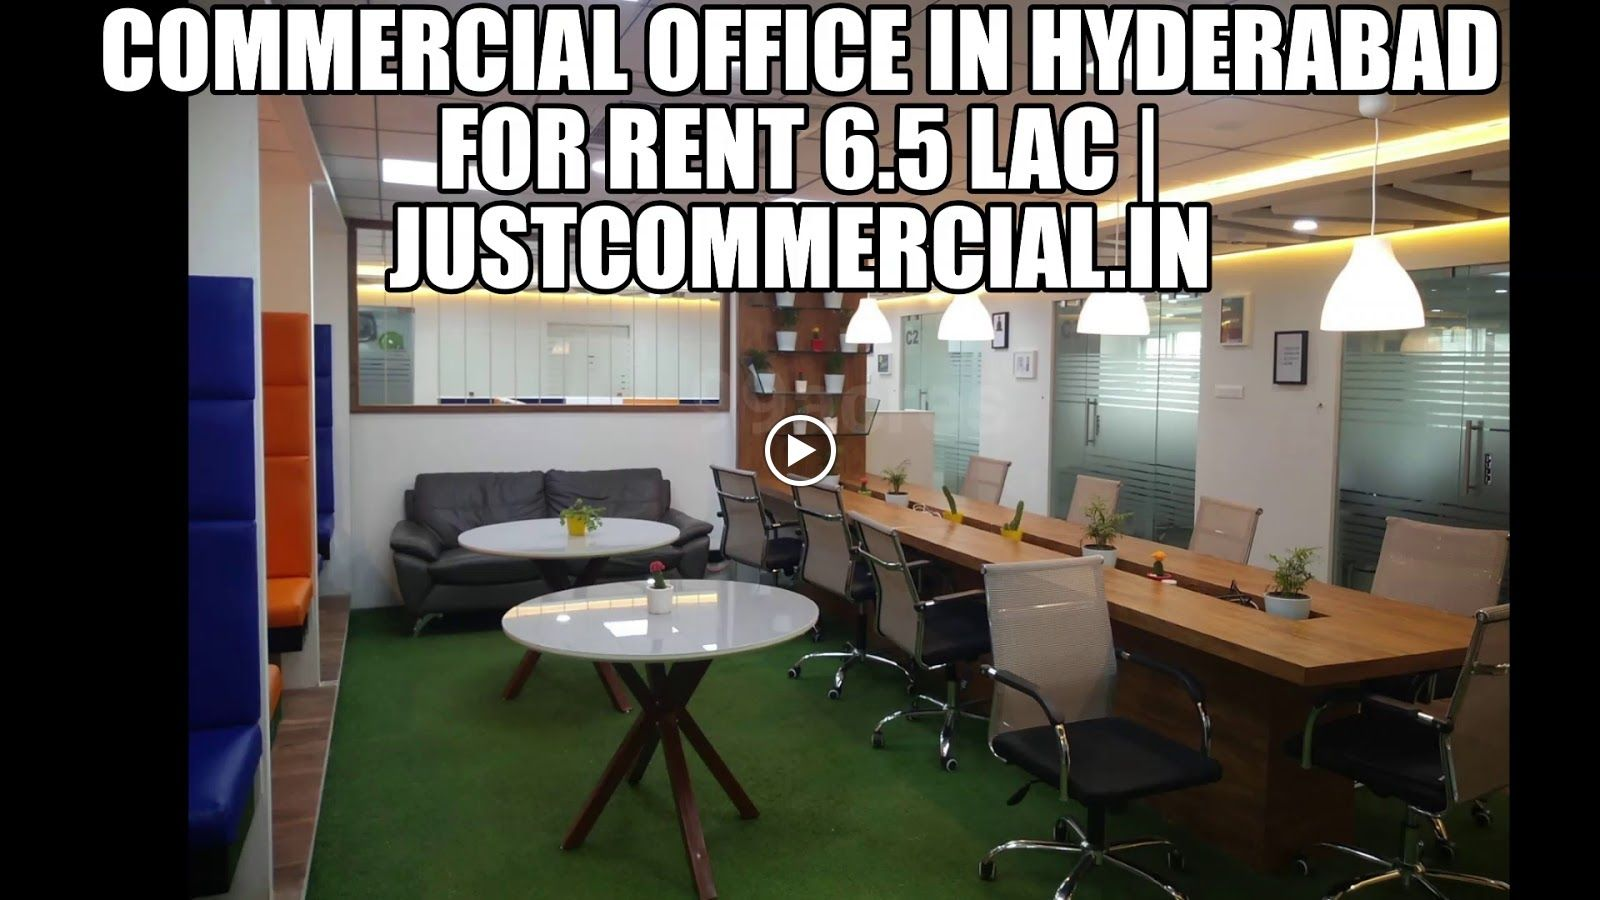 Commercial Real Estate Property Buy